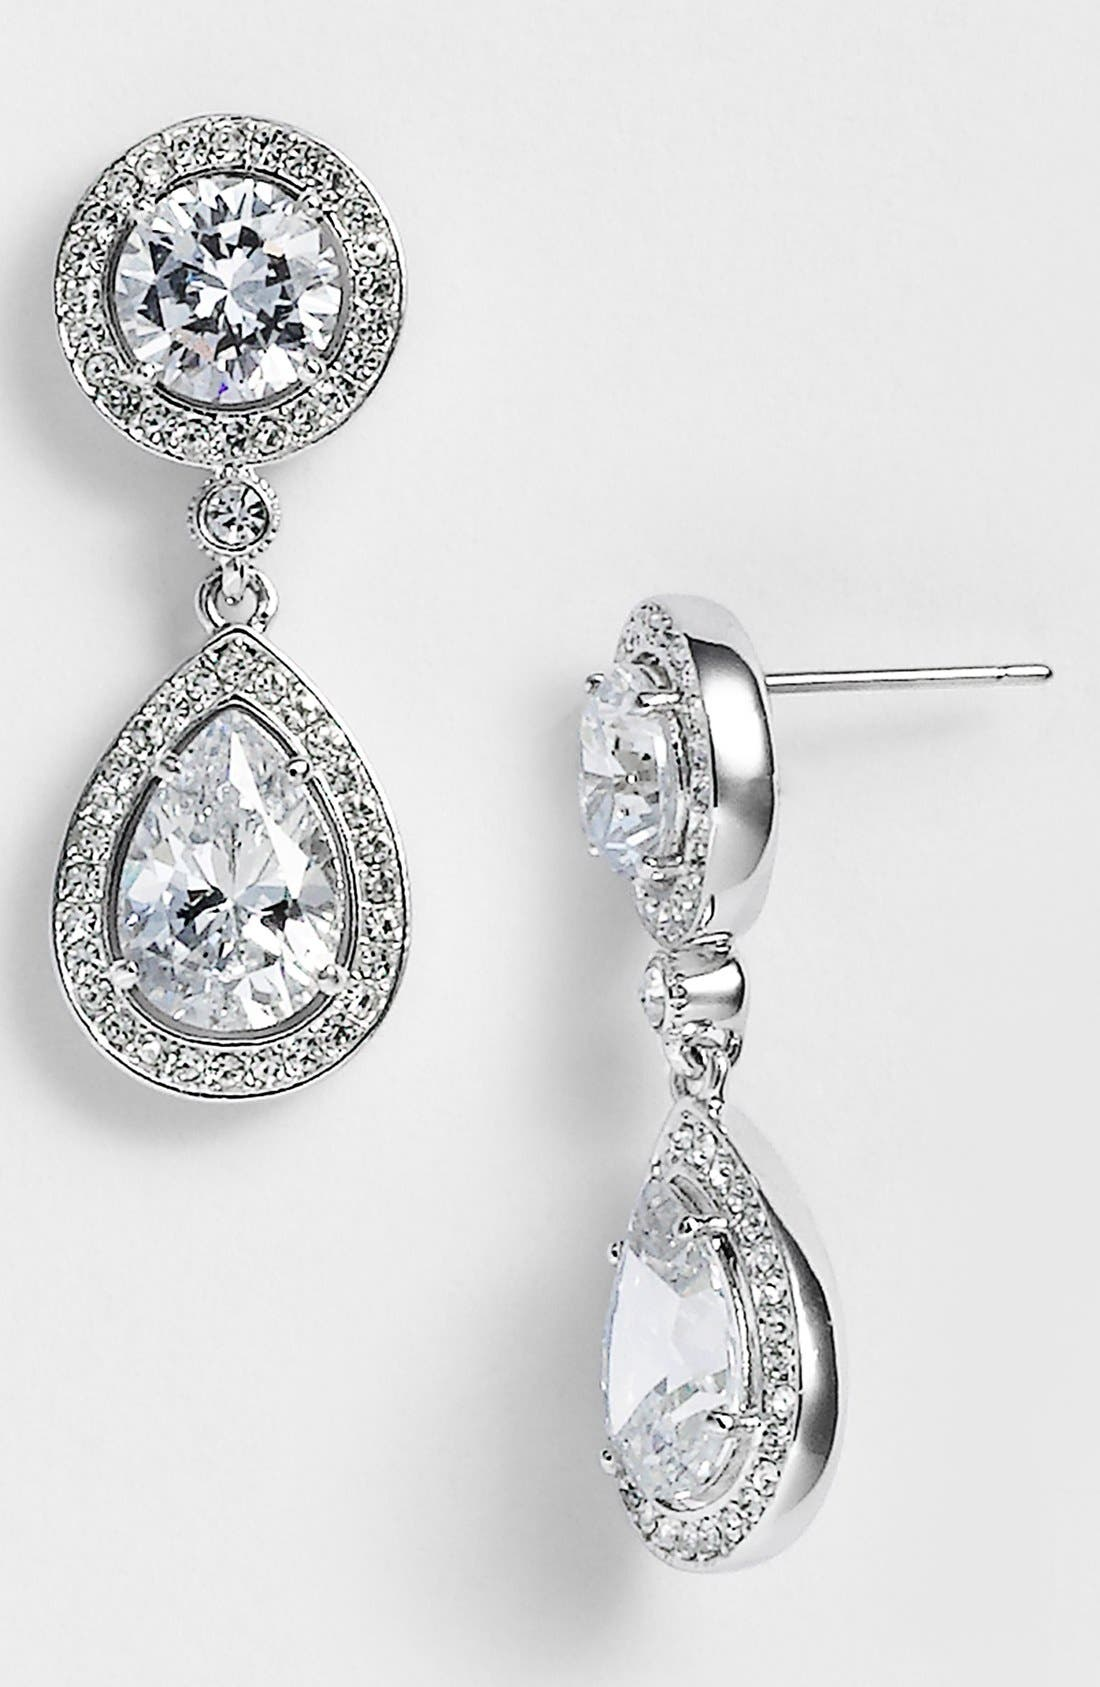 Main Image - Nadri Crystal & Cubic Zirconia Drop Earrings (Nordstrom Exclusive)